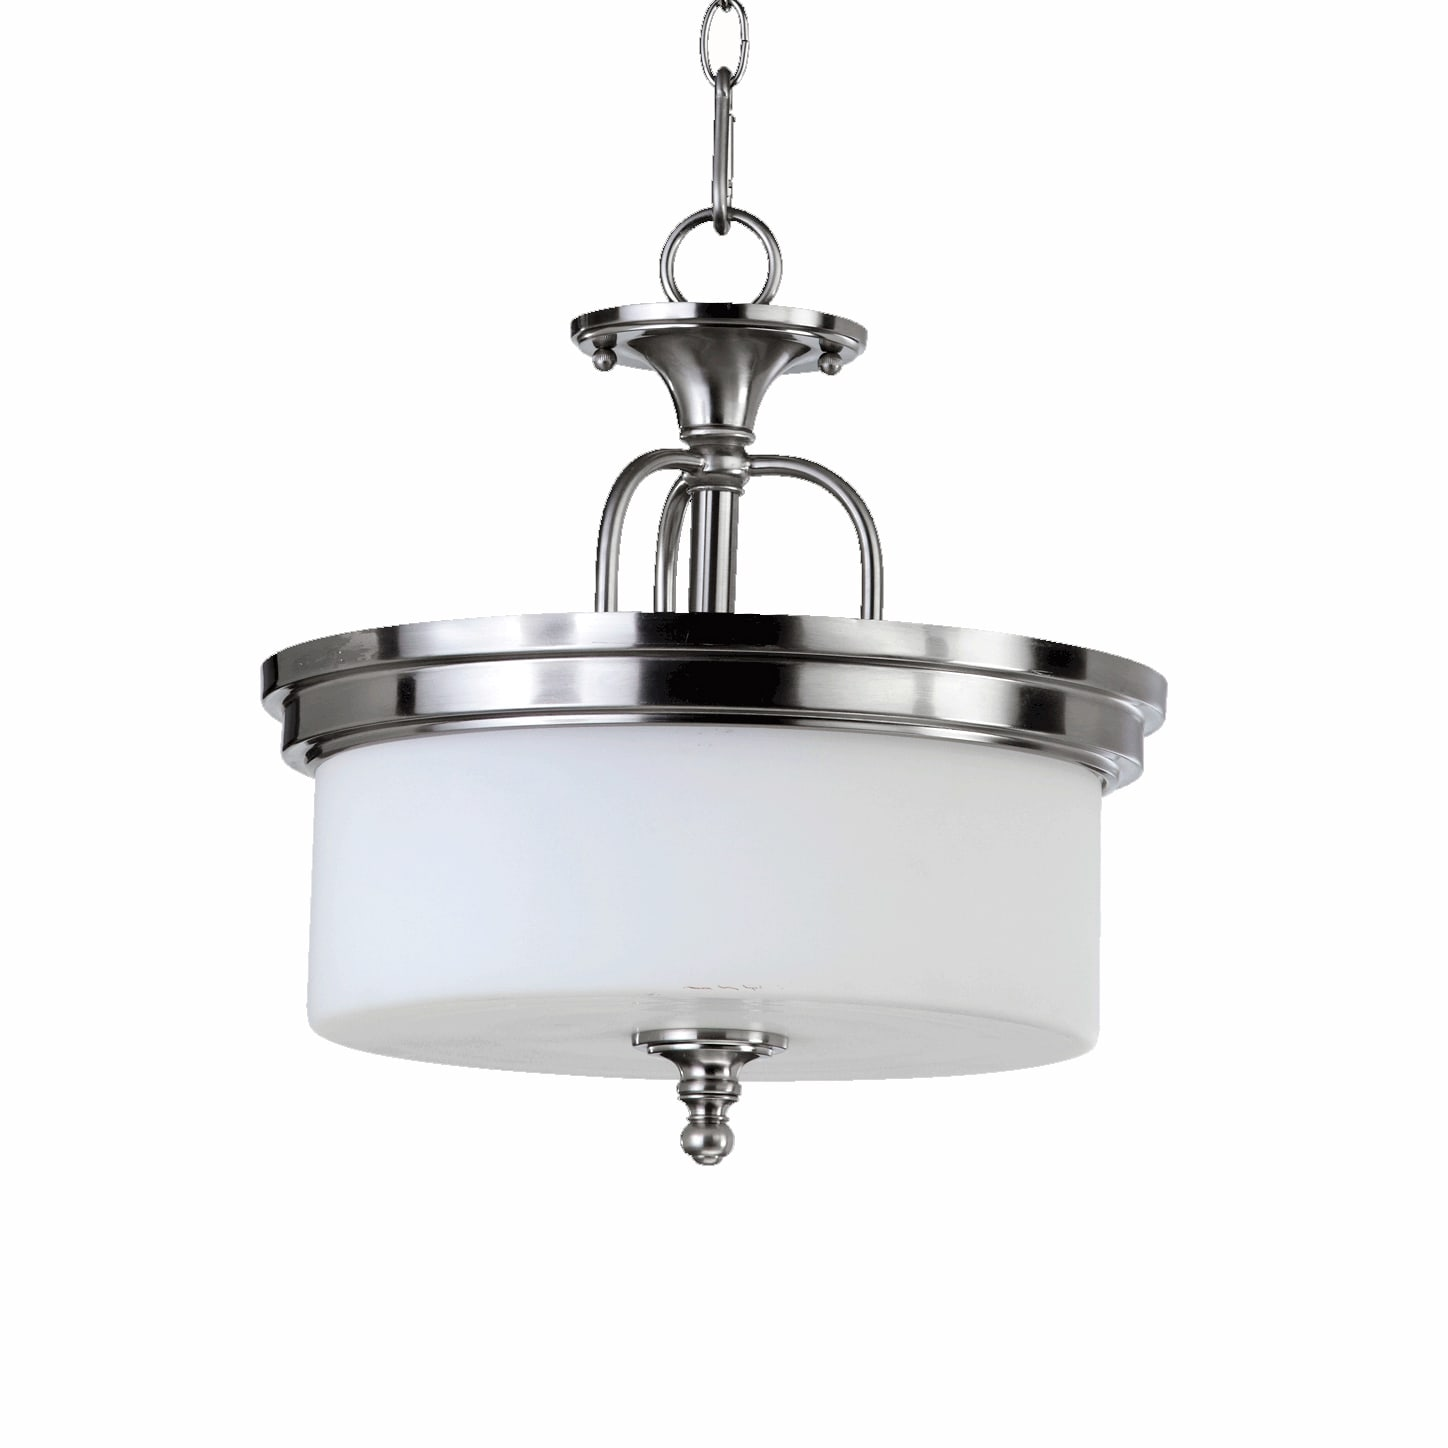 Quorum international 2890 14 65 3 light down lighting convertible ceiling fixture